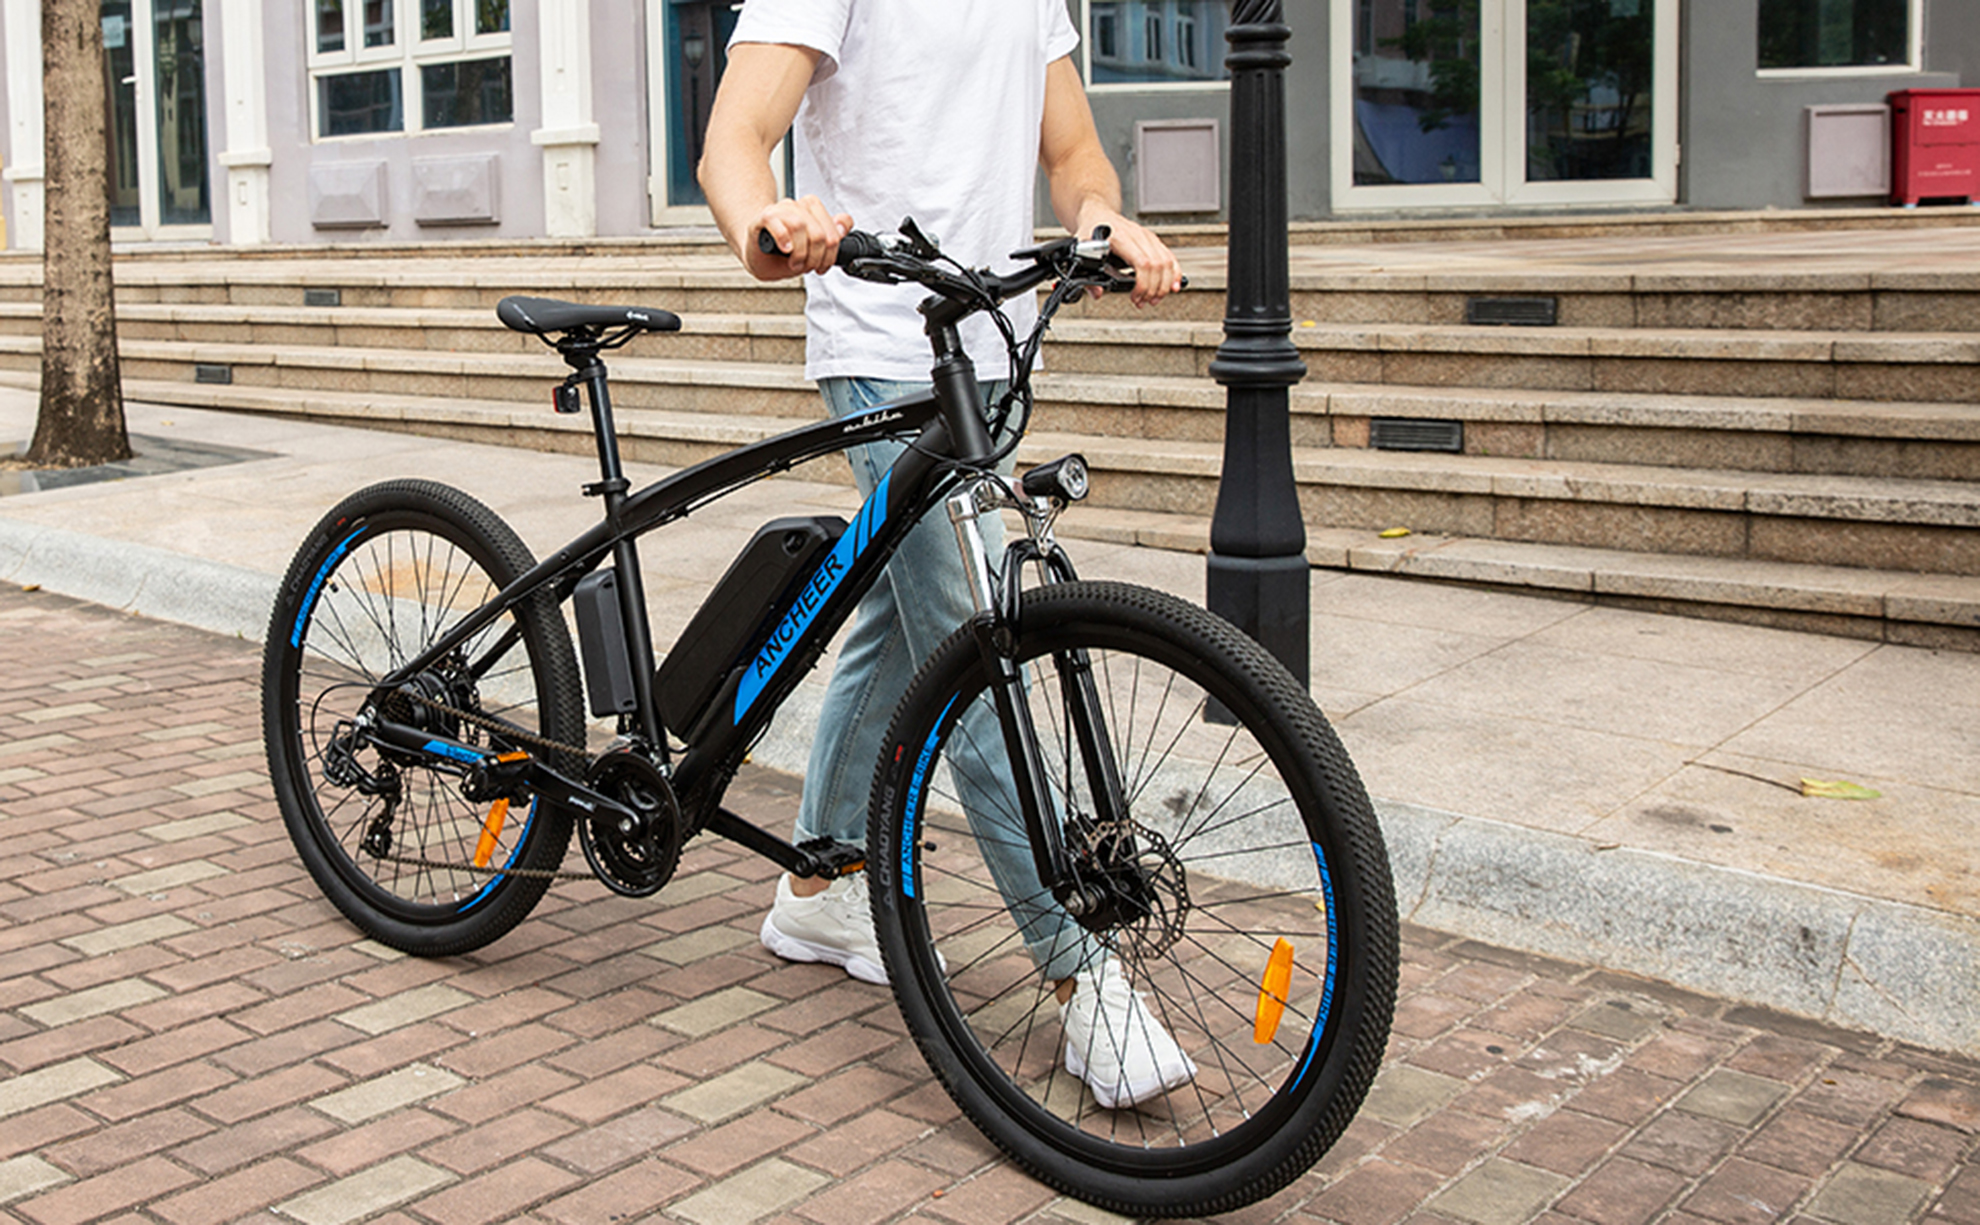 Ancheer Bikes e-bikes are lightweight and durable